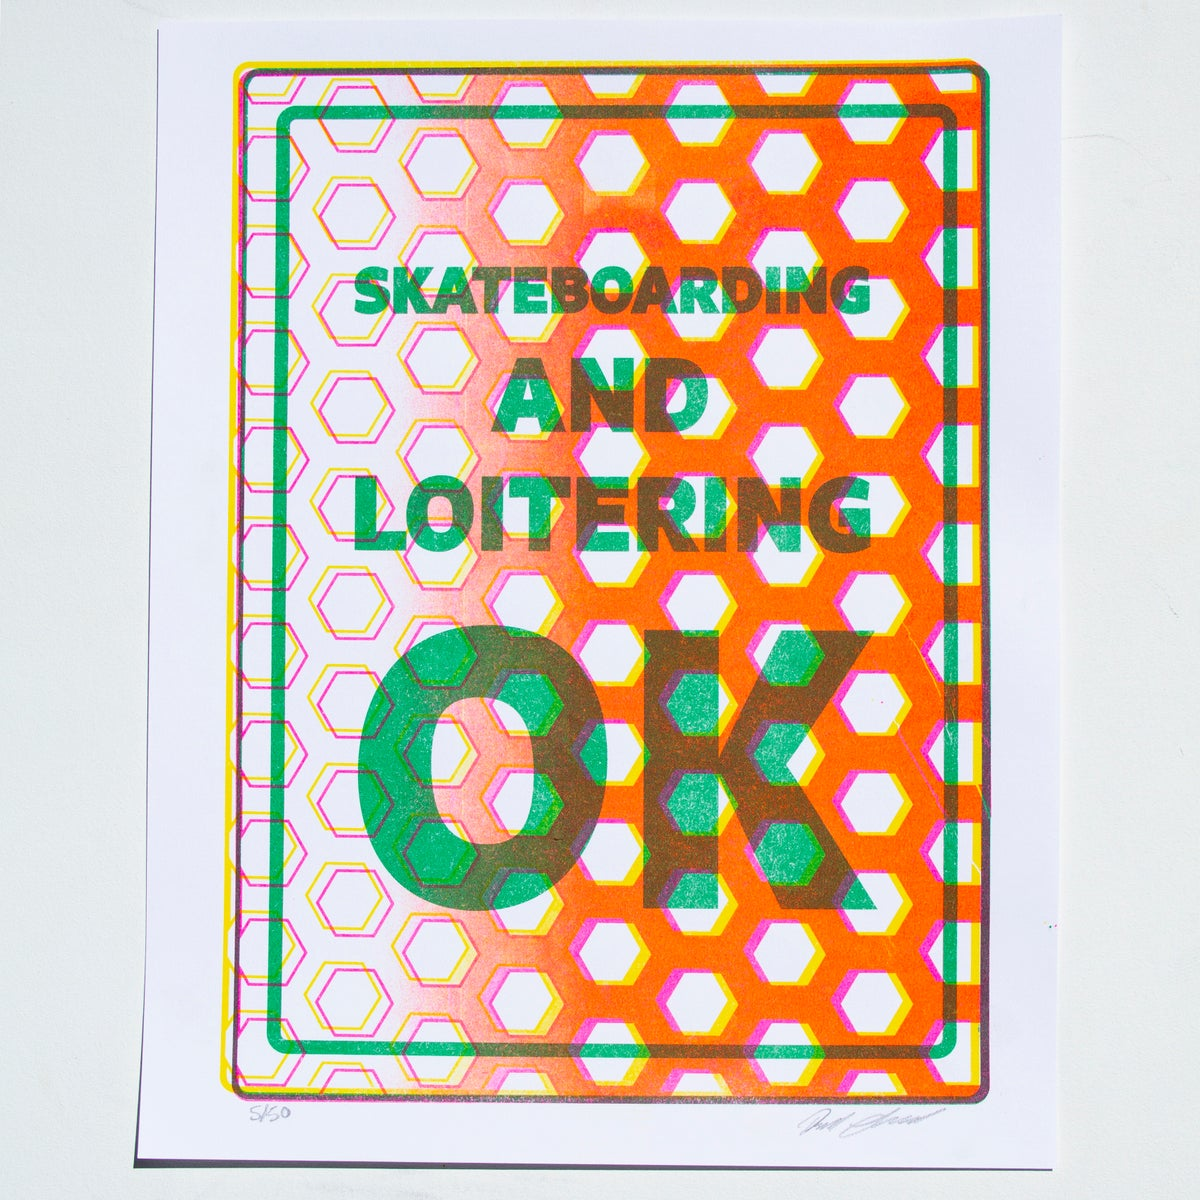 Image of Skateboarding and Loitering OK